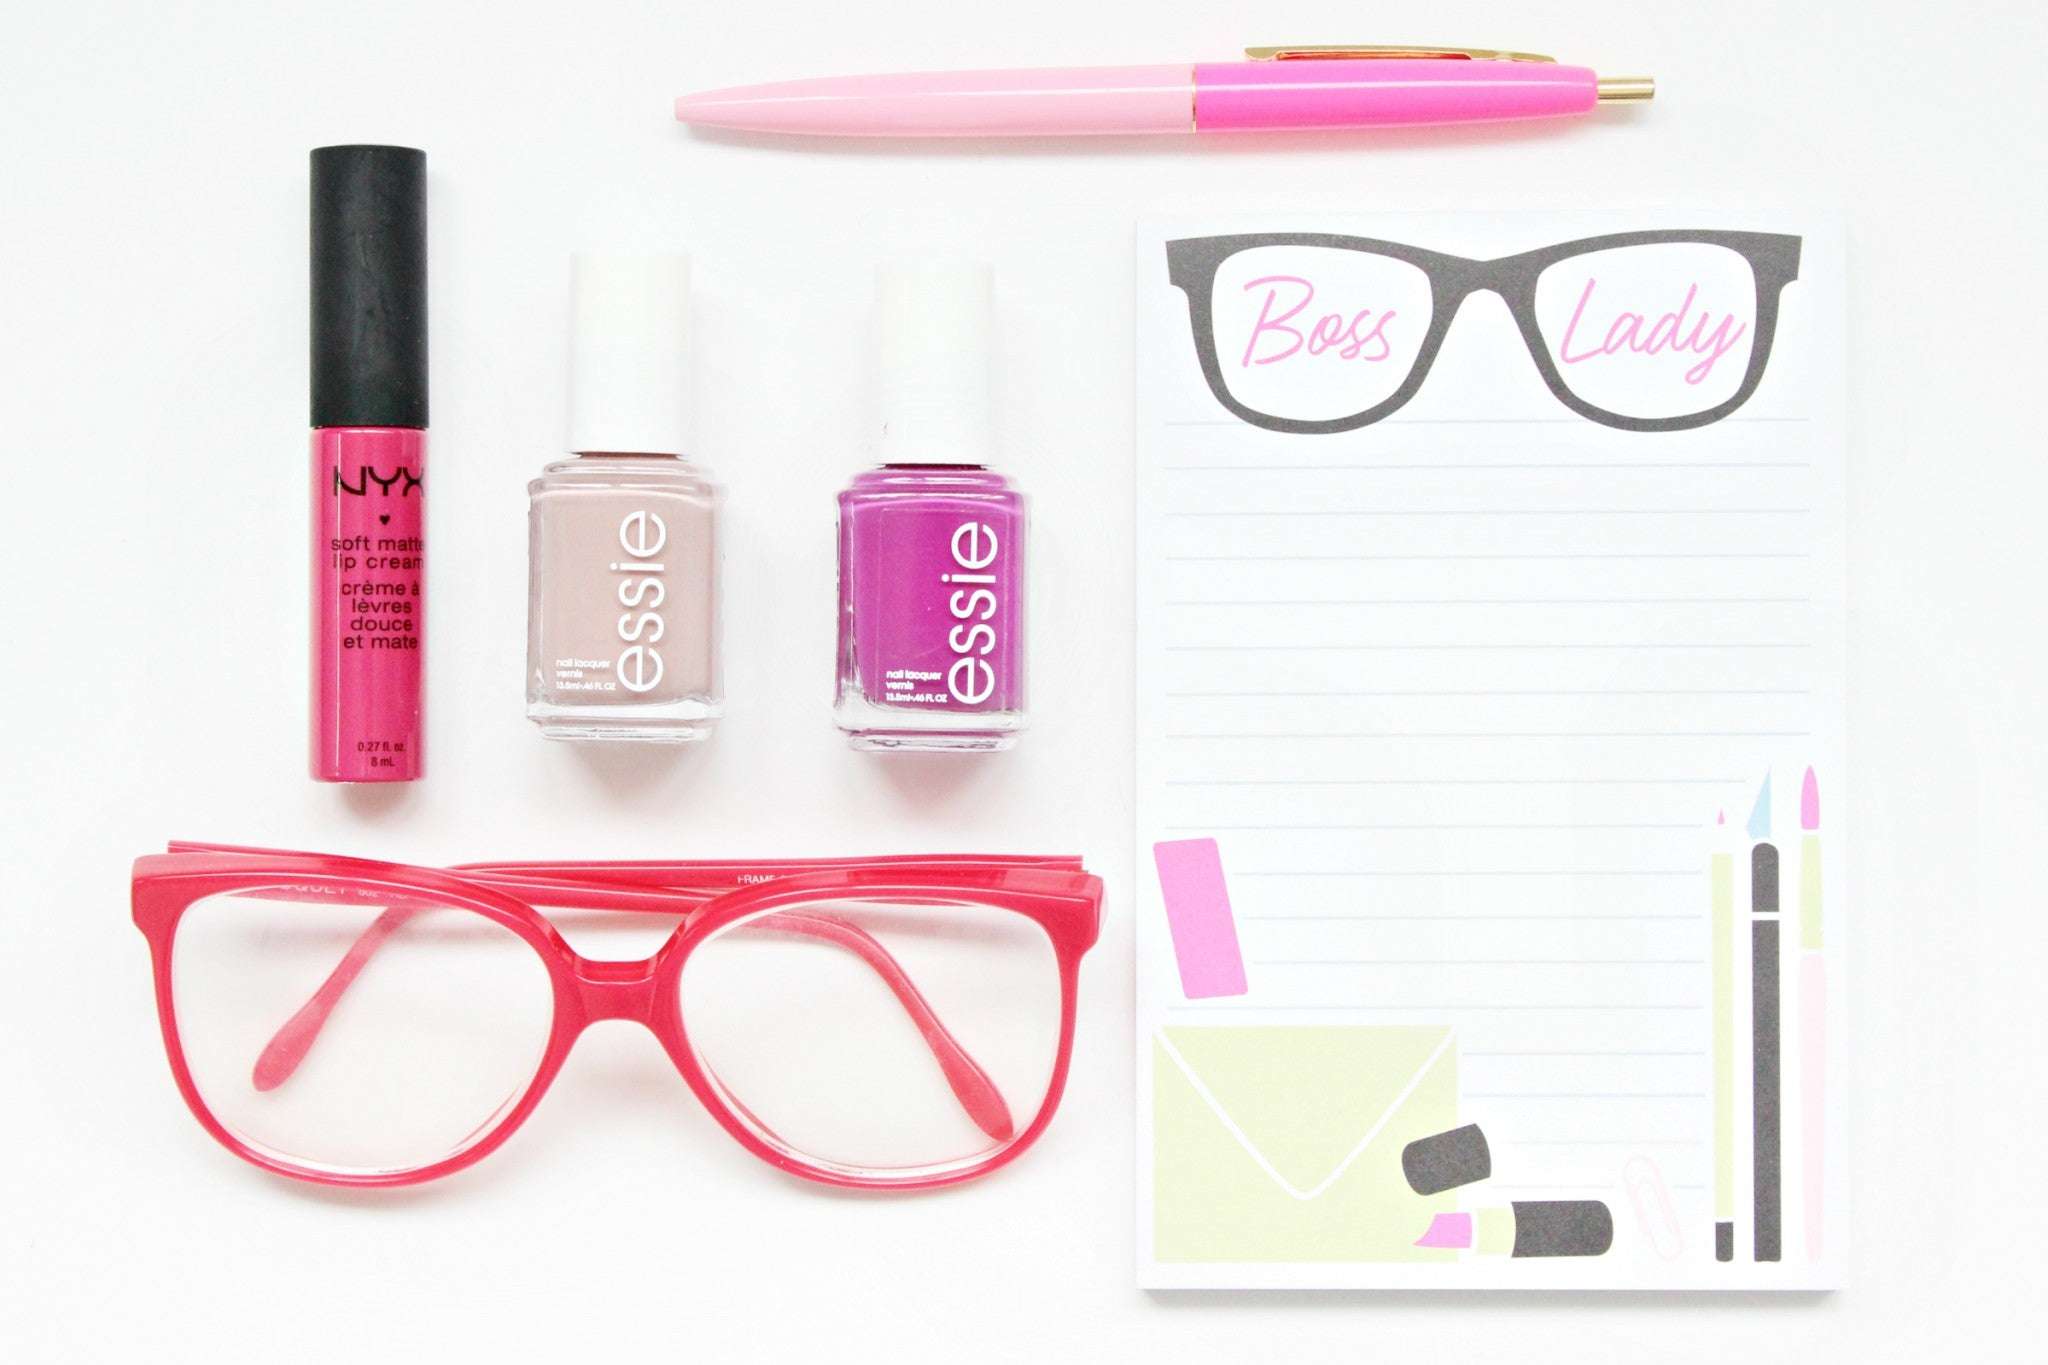 boss-lady-notepad-giveaway-2